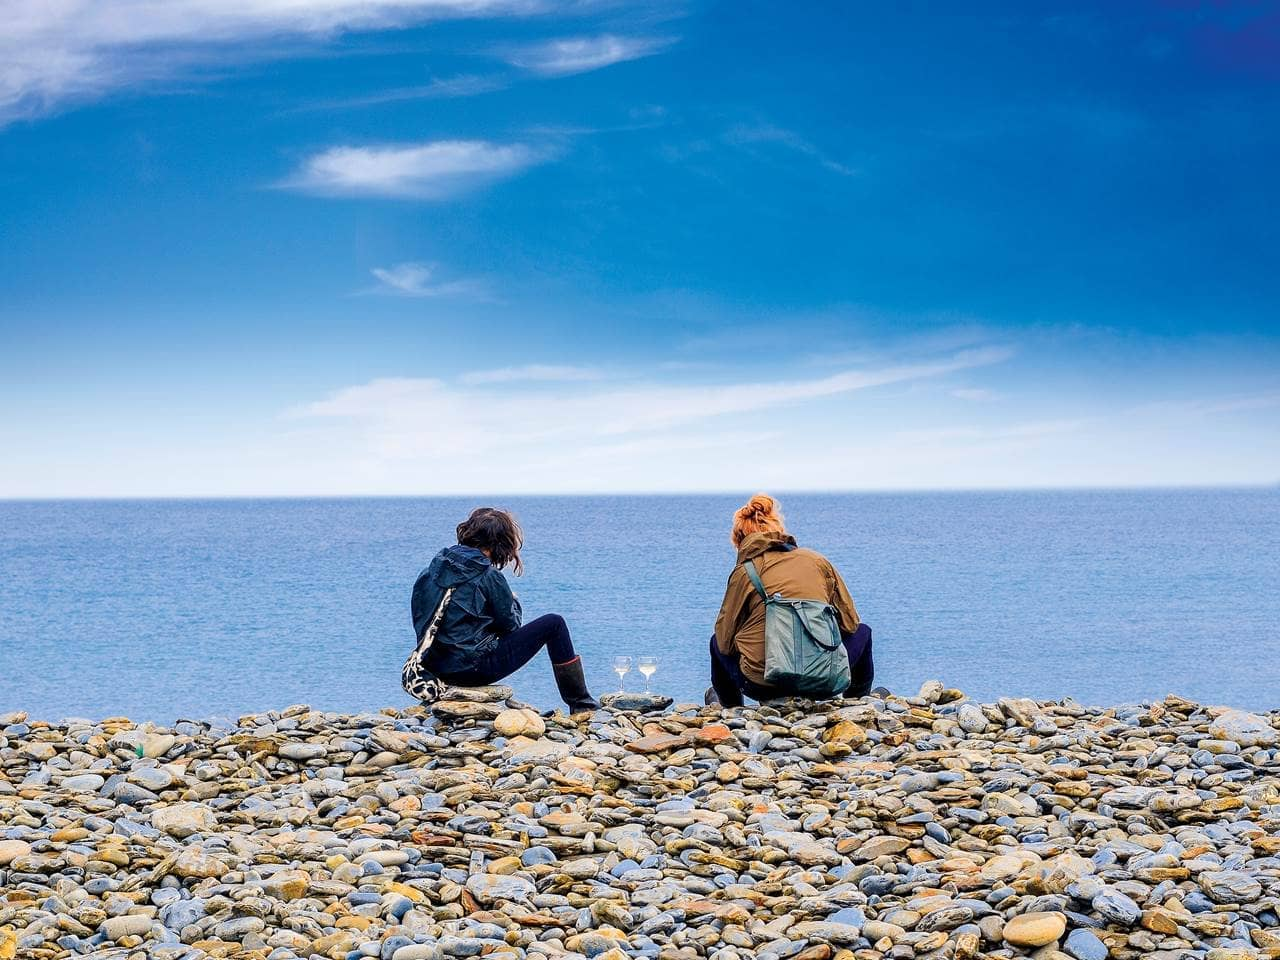 newfoundland canada dating sites Ancestrycom newfoundland, canada, births, marriages, and contains records dating from 1757 to contains census records from newfoundland, canada.